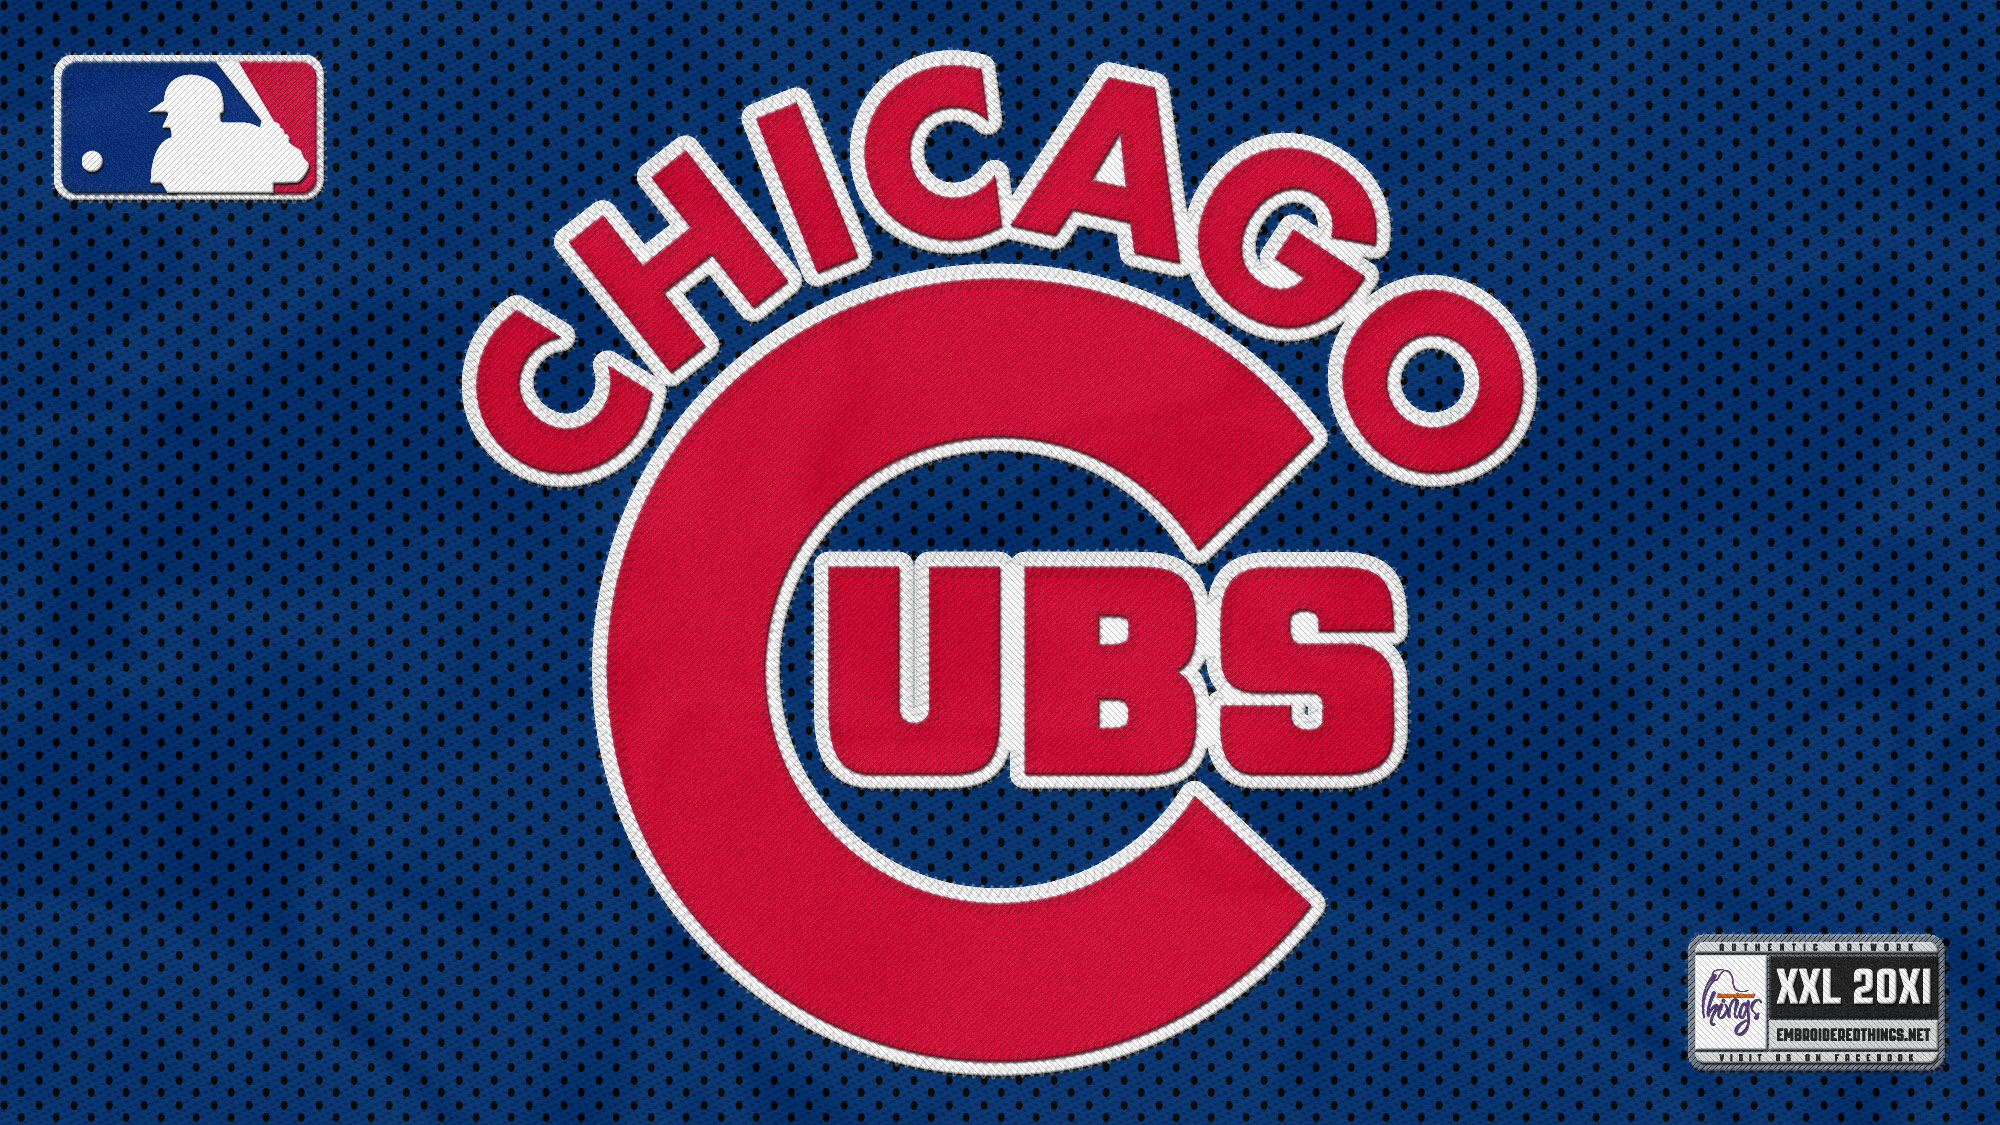 CHICAGO CUBS mlb baseball 9 wallpaper 2000x1125 232516 2000x1125